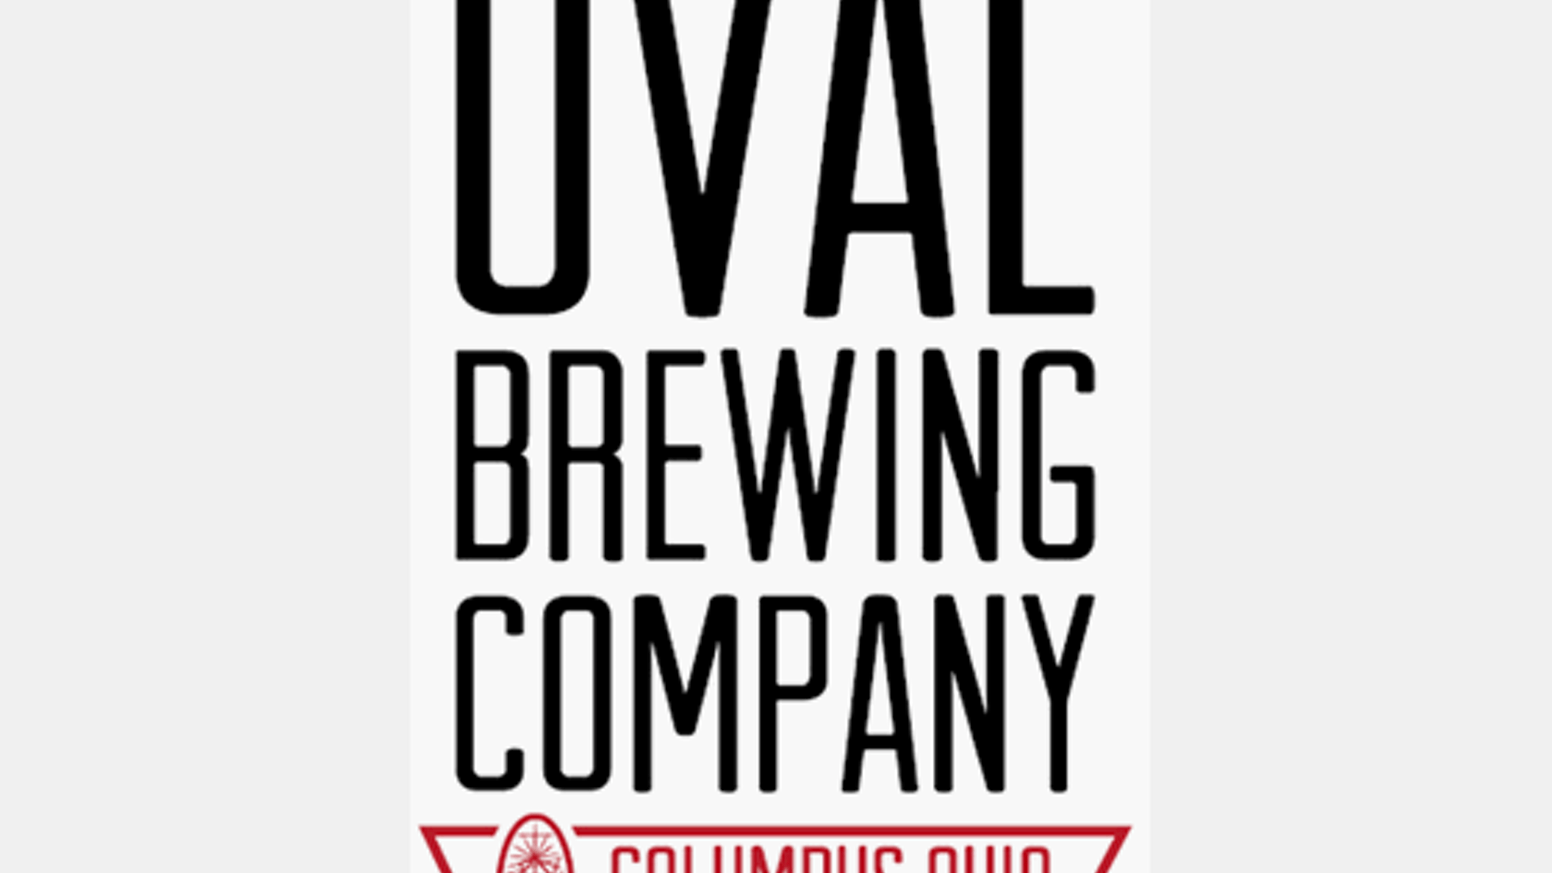 Land-Grant Brewing Company (formerly Oval Brewing) is a production brewery and taproom in Columbus, Ohio.